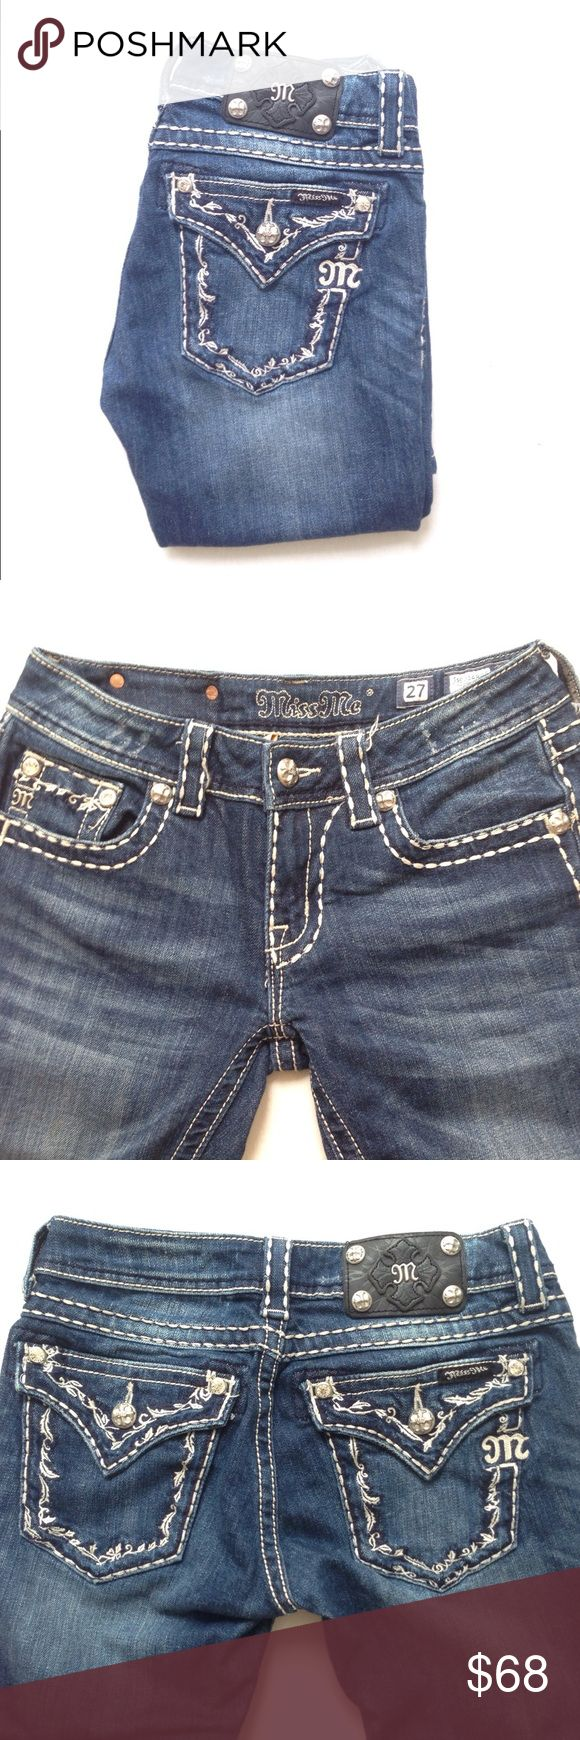 """Miss Me Boot Cut Jeans Miss Me Boot Cut Jeans Js5014B46. Inseam 33"""". May have some line wear near the bottom from folding, other than that in great condition. Miss Me Jeans Boot Cut"""